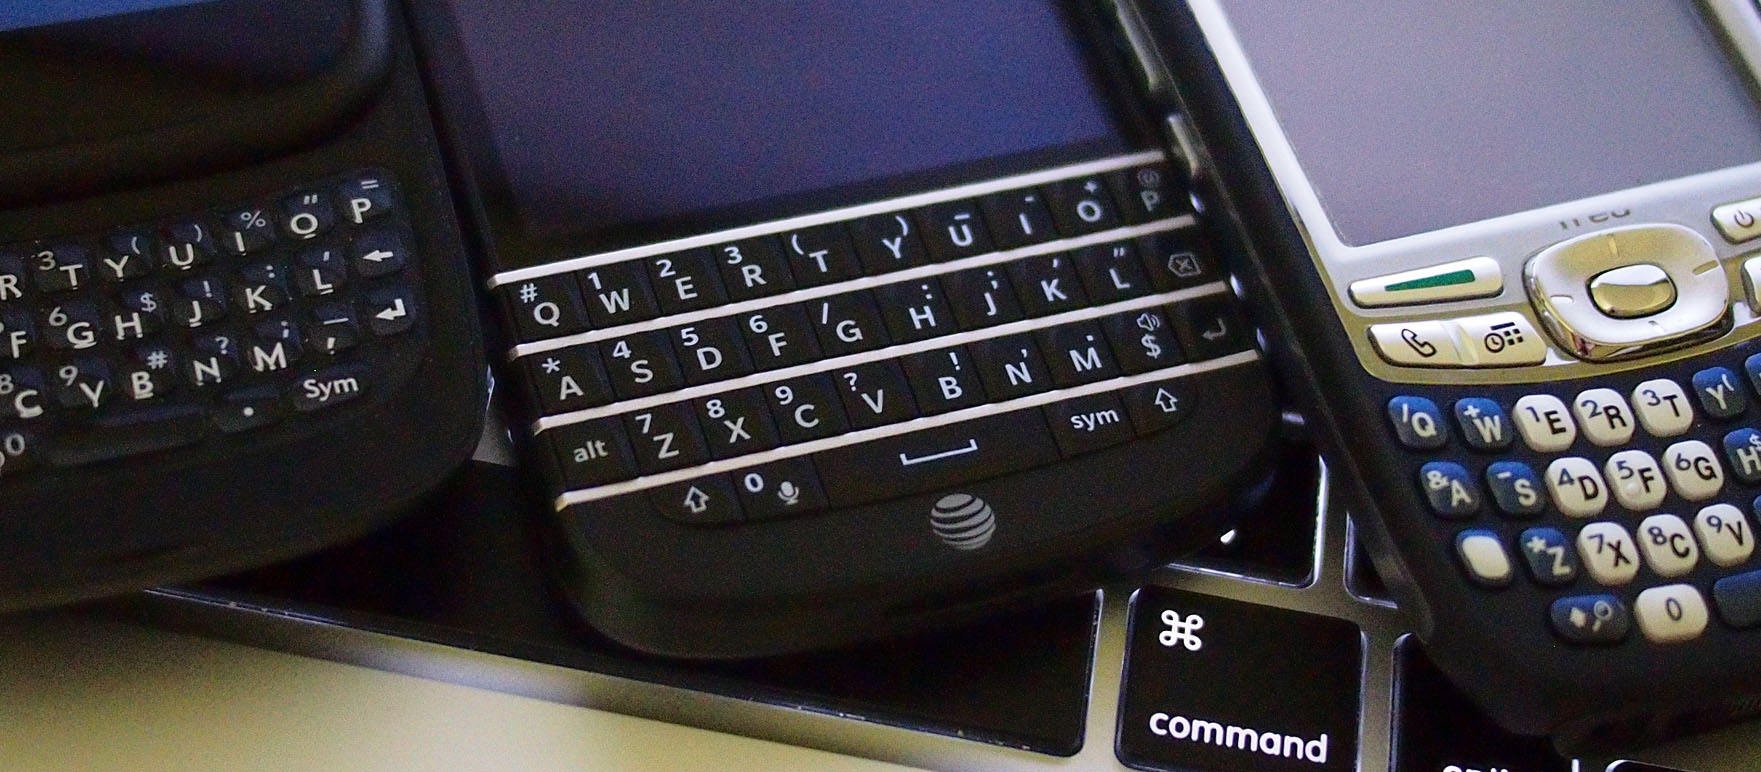 Pushing buttons vs. Tapping pixels: The great keyboard debate - Talk Mobile | Android Central